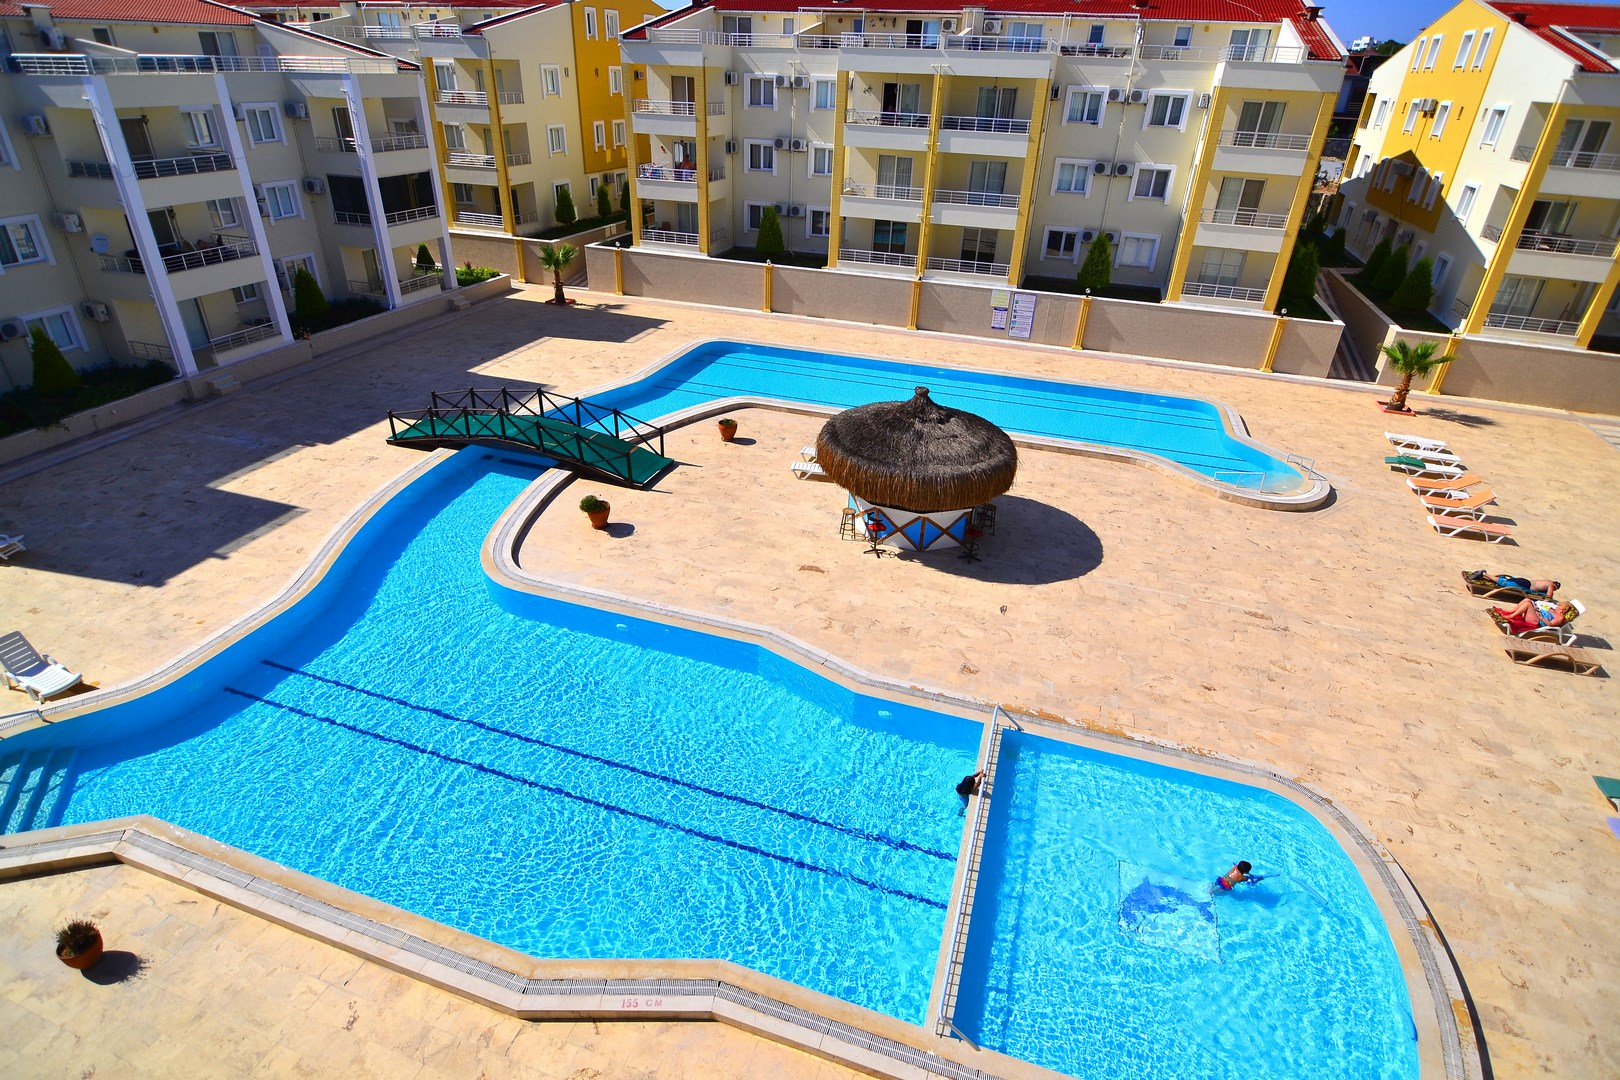 3 bedroom duplex apartment for sale in Didim Altinkum